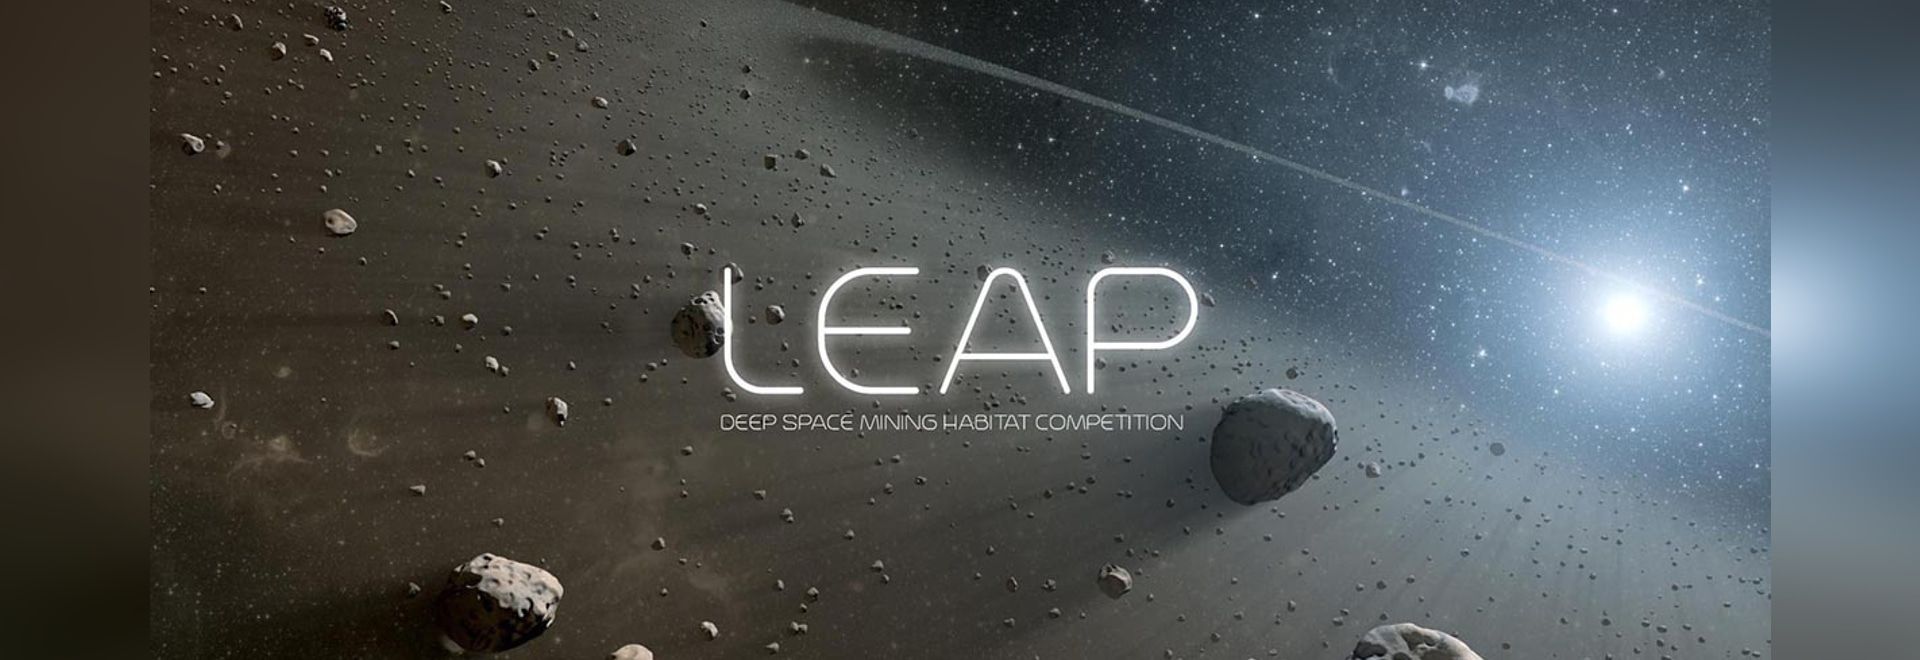 Competition: Leap - Space Habitat Design Competition